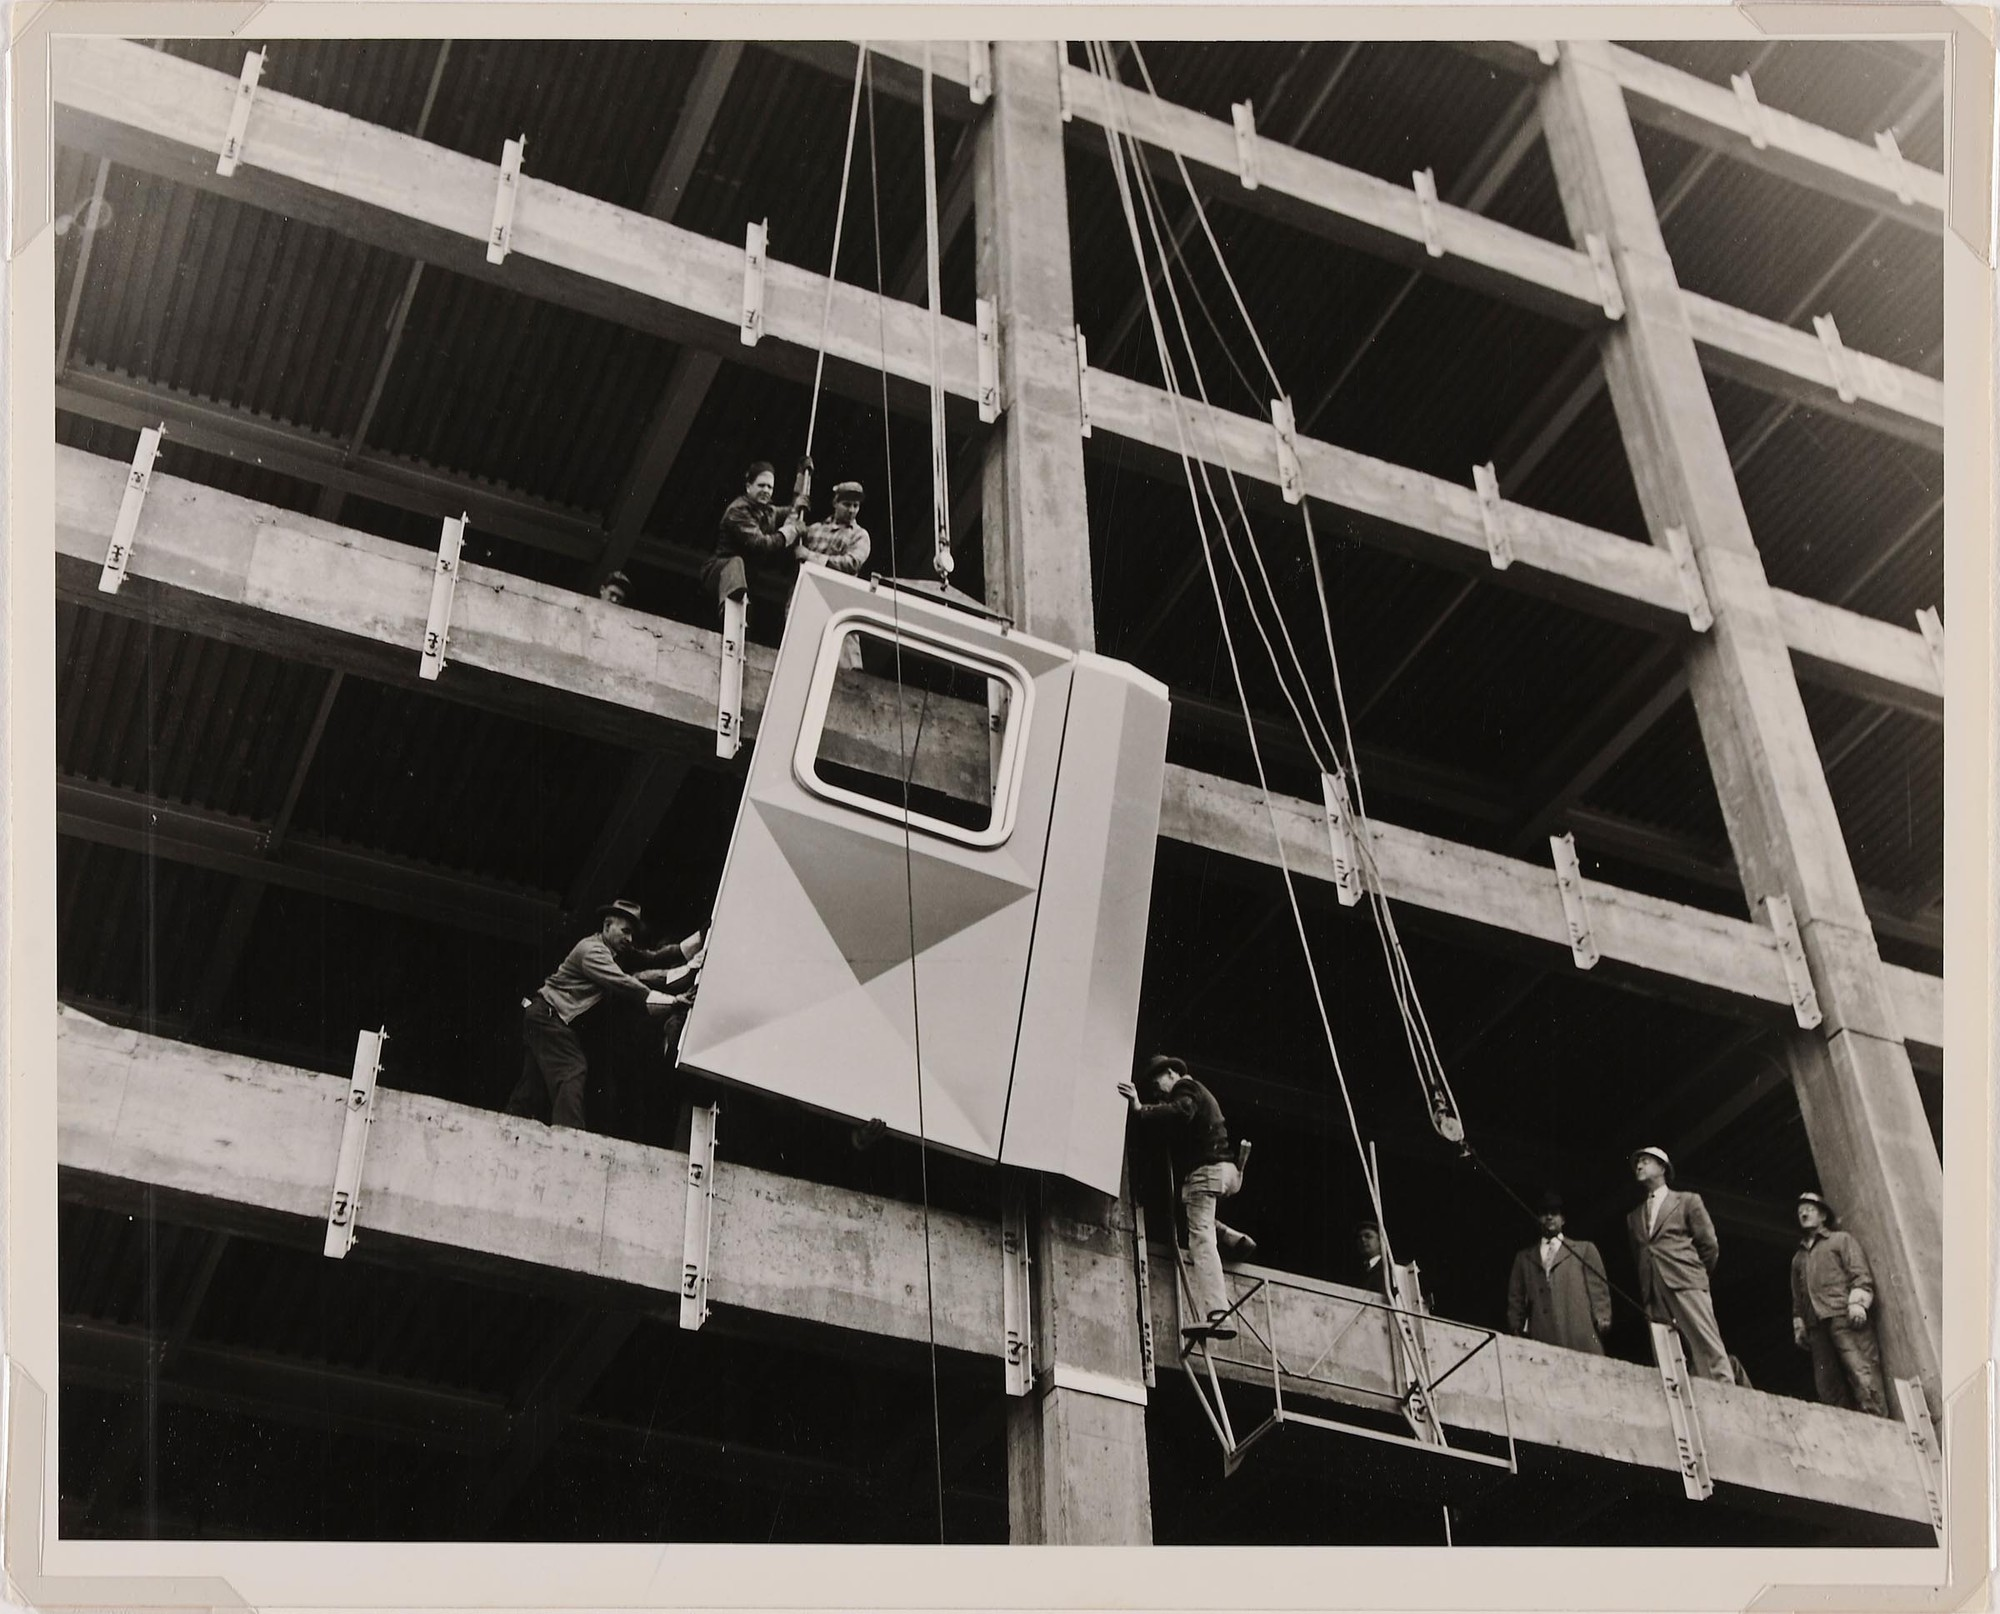 HAC Lab Pittsburgh: Imagining the Modern, Newman-Schmidt Studios, Workmen installing the first aluminum panel, 1951. Gelatin silver print. Director's Discretionary Fund.